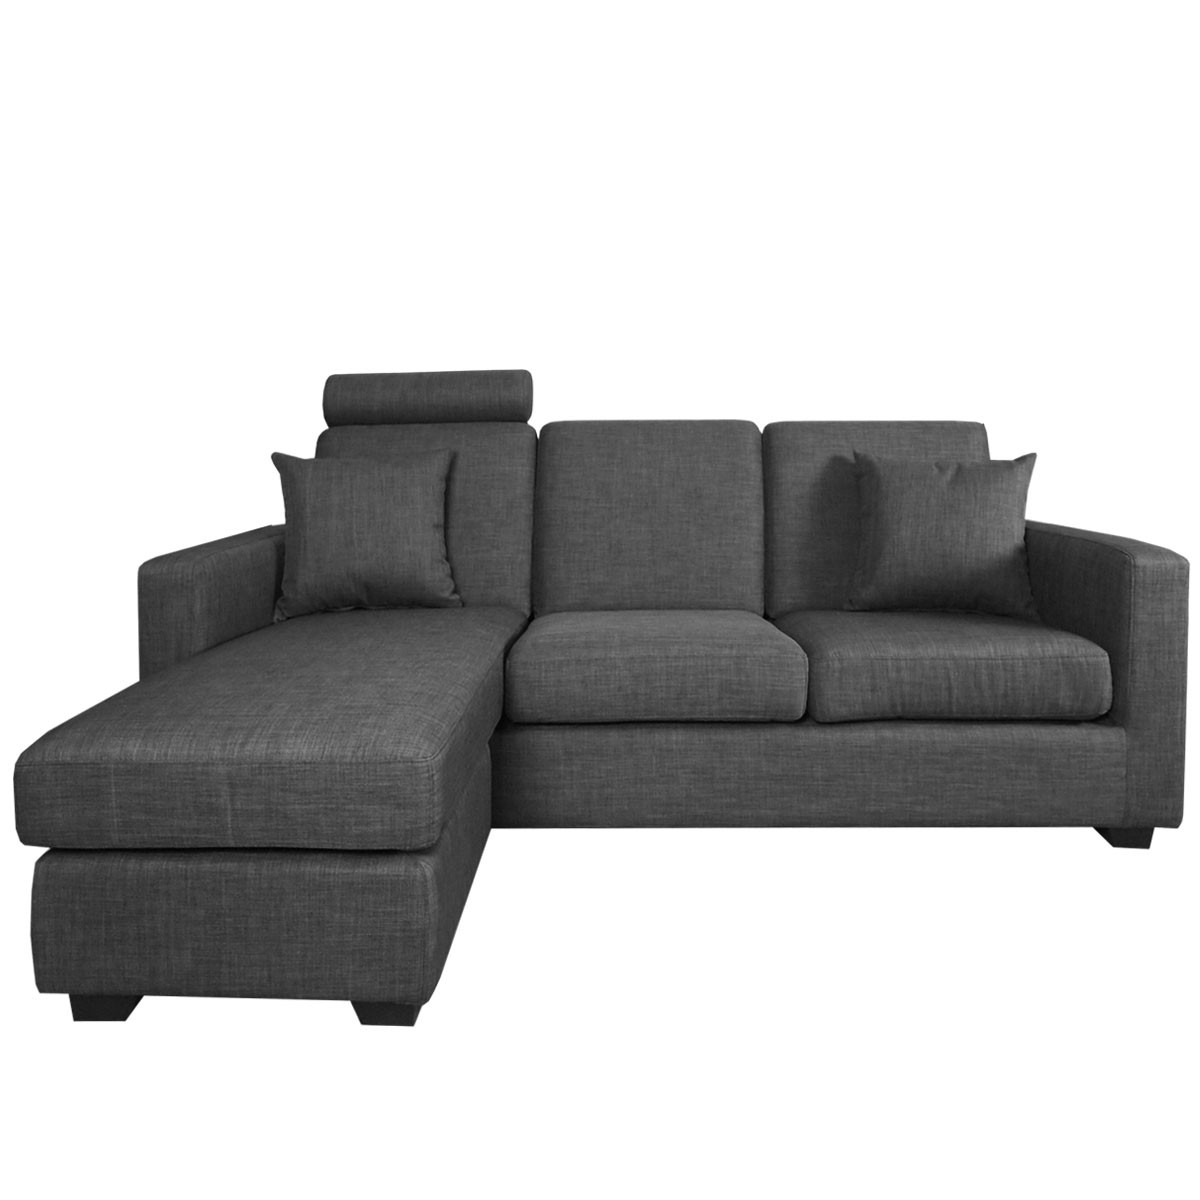 Richmond Sofas Pertaining To Most Popular Richmond Sofa Grey (View 7 of 15)